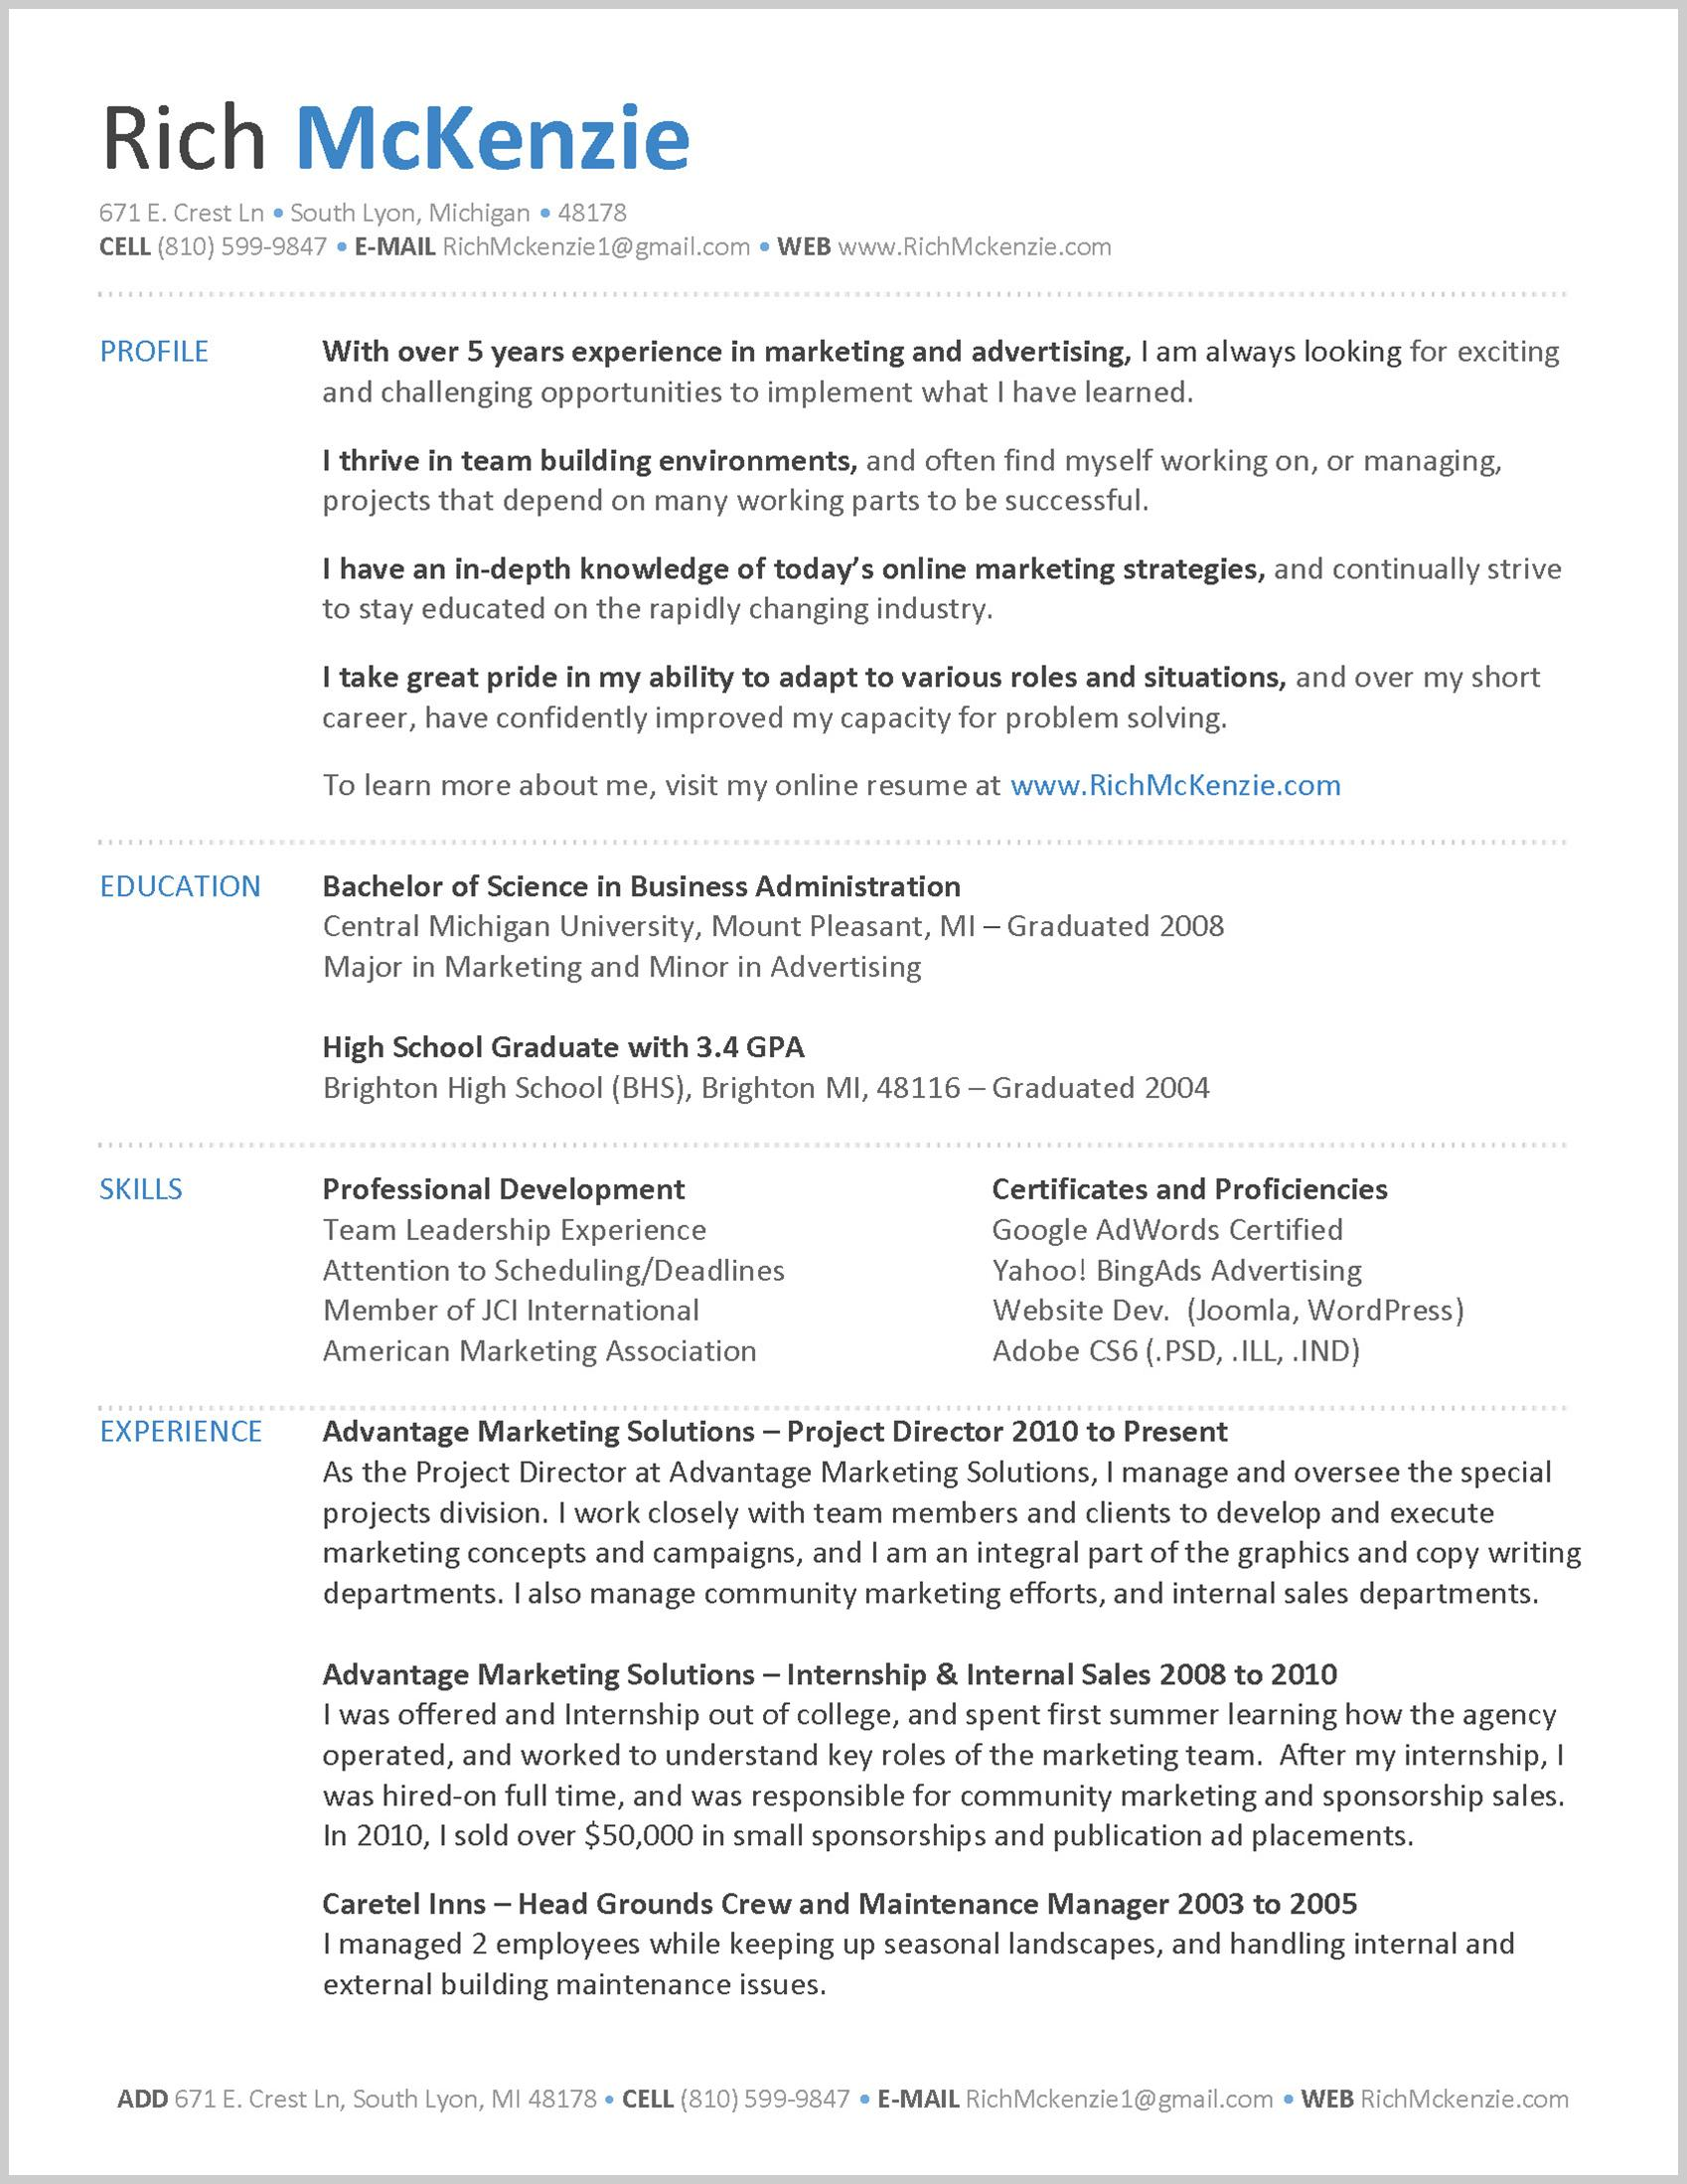 help my resume job cover letter help resume maker create professional resumes professional job cover letter - Free Help With Resume